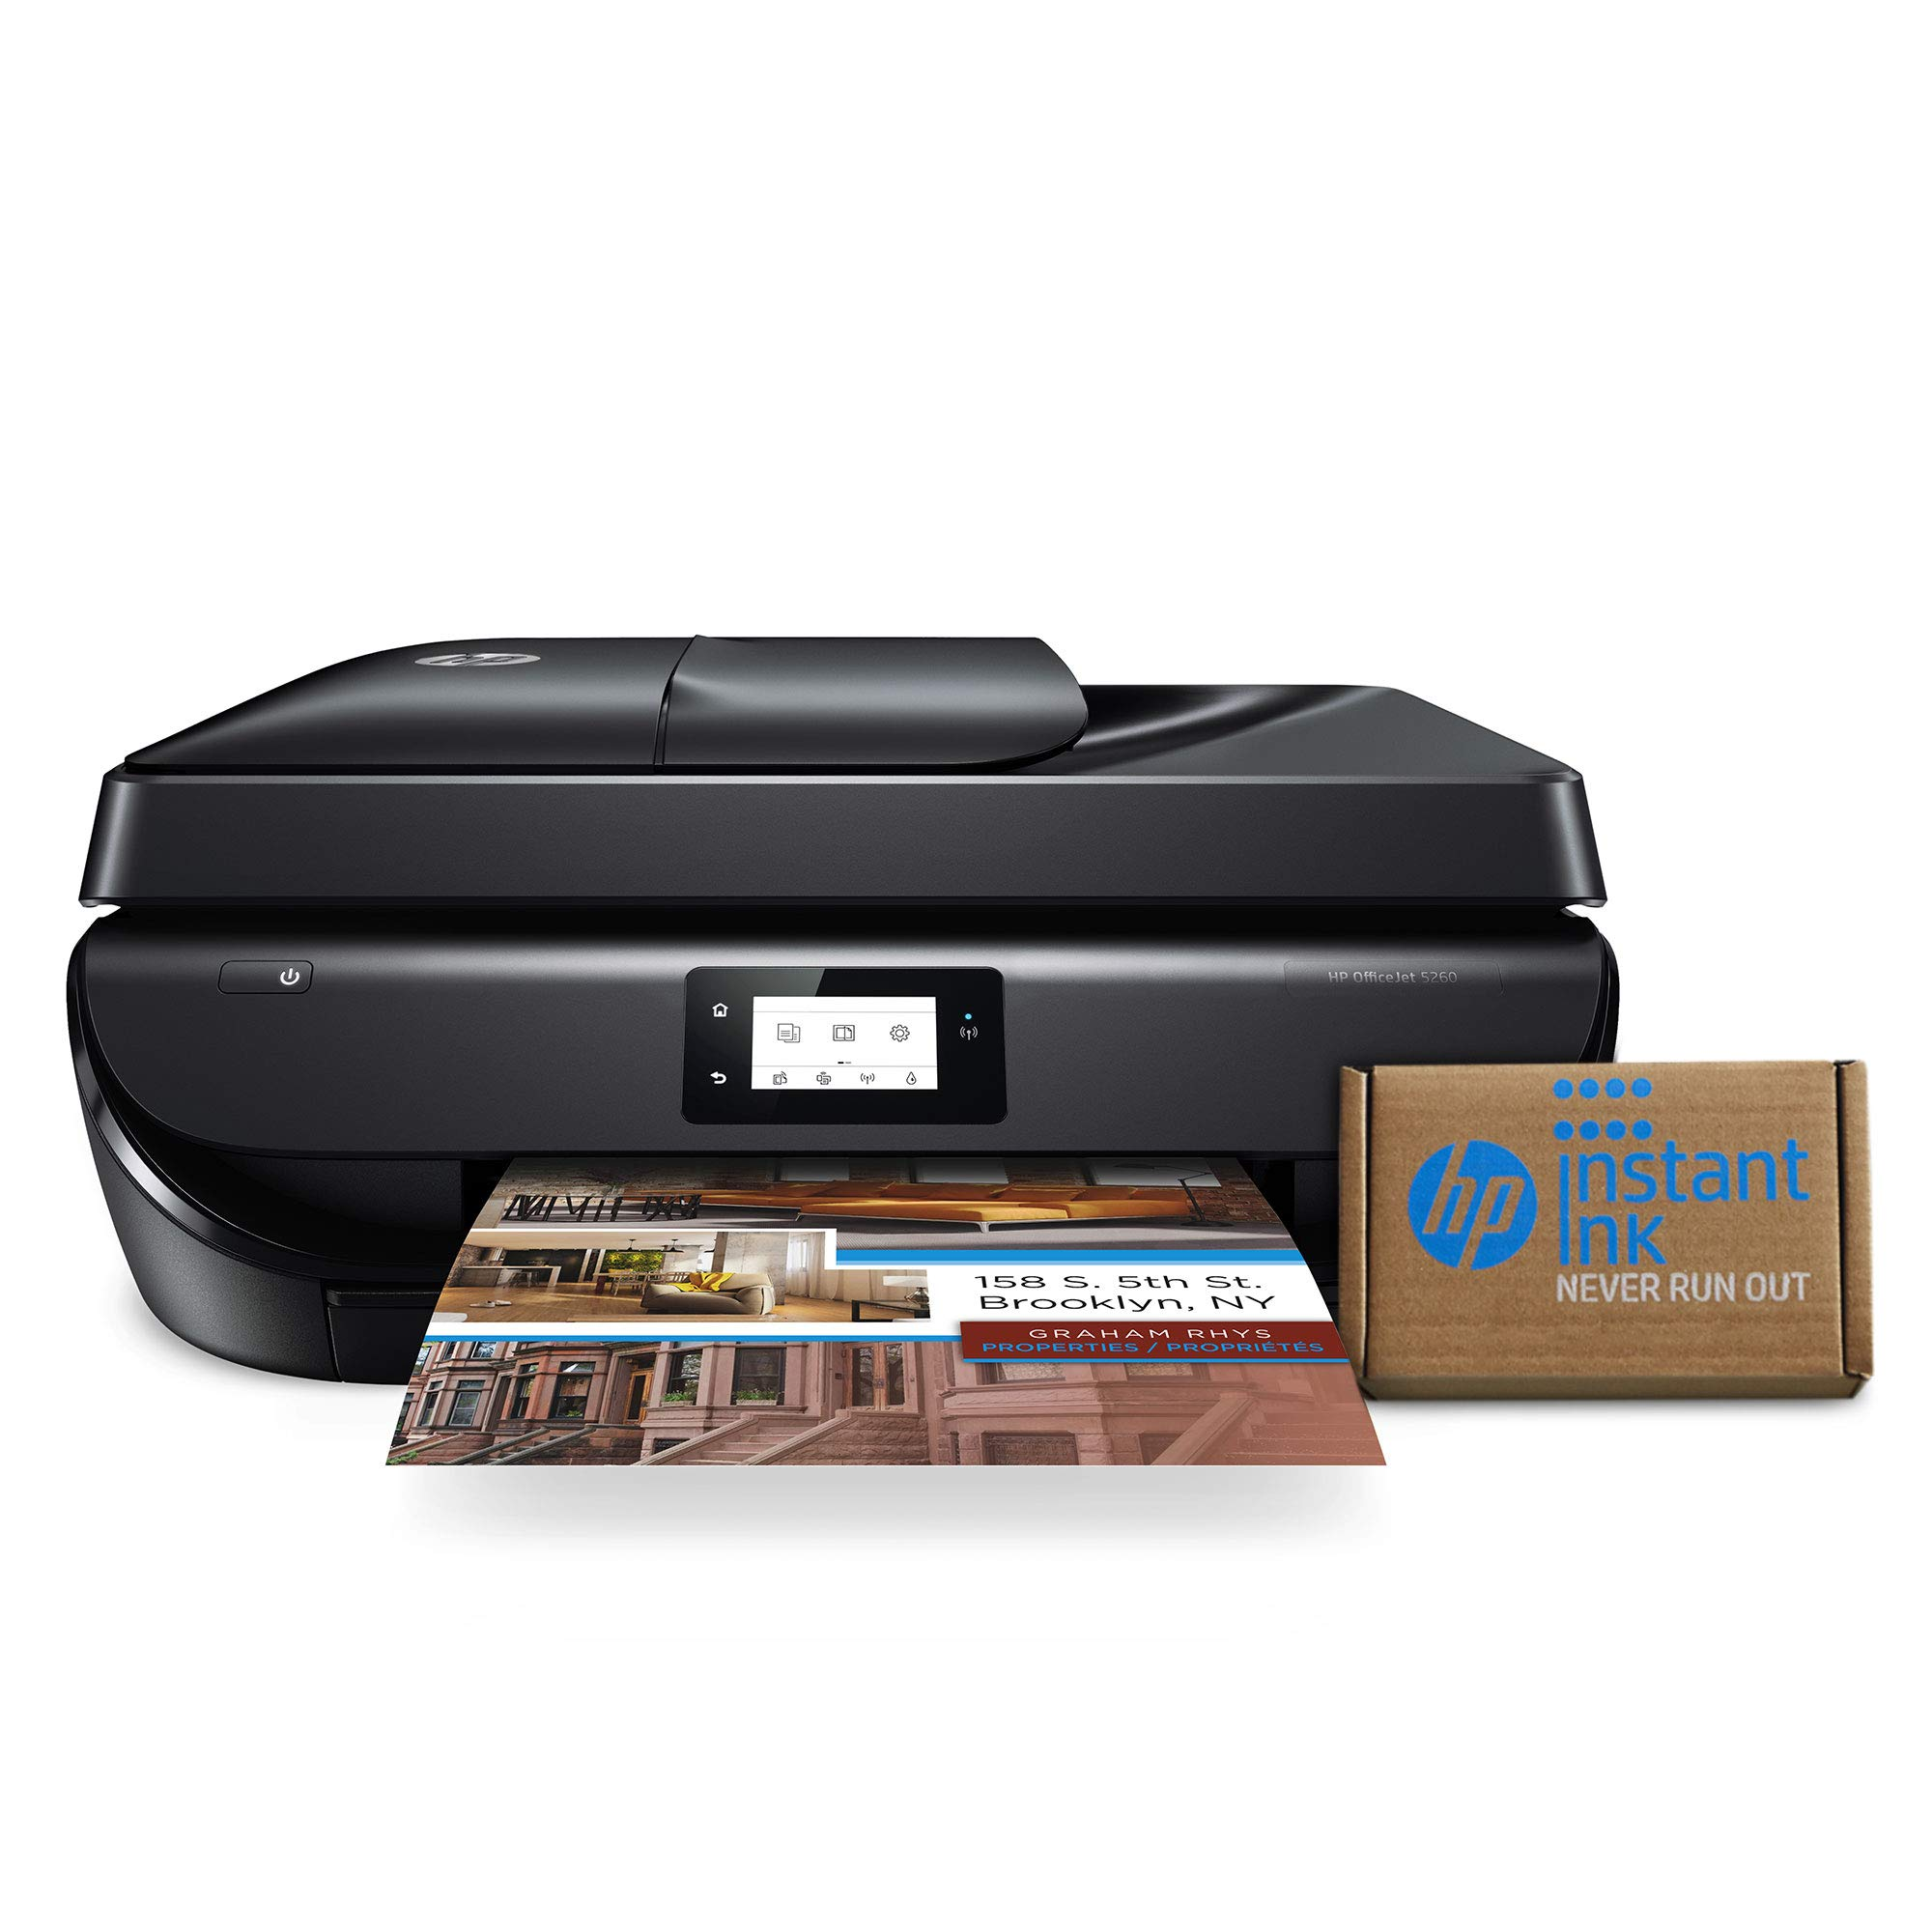 HP OfficeJet 5260 Wireless All-in-One Printer - includes 2 Years of Ink Delivered to Your Door (Z4B13A) by HP